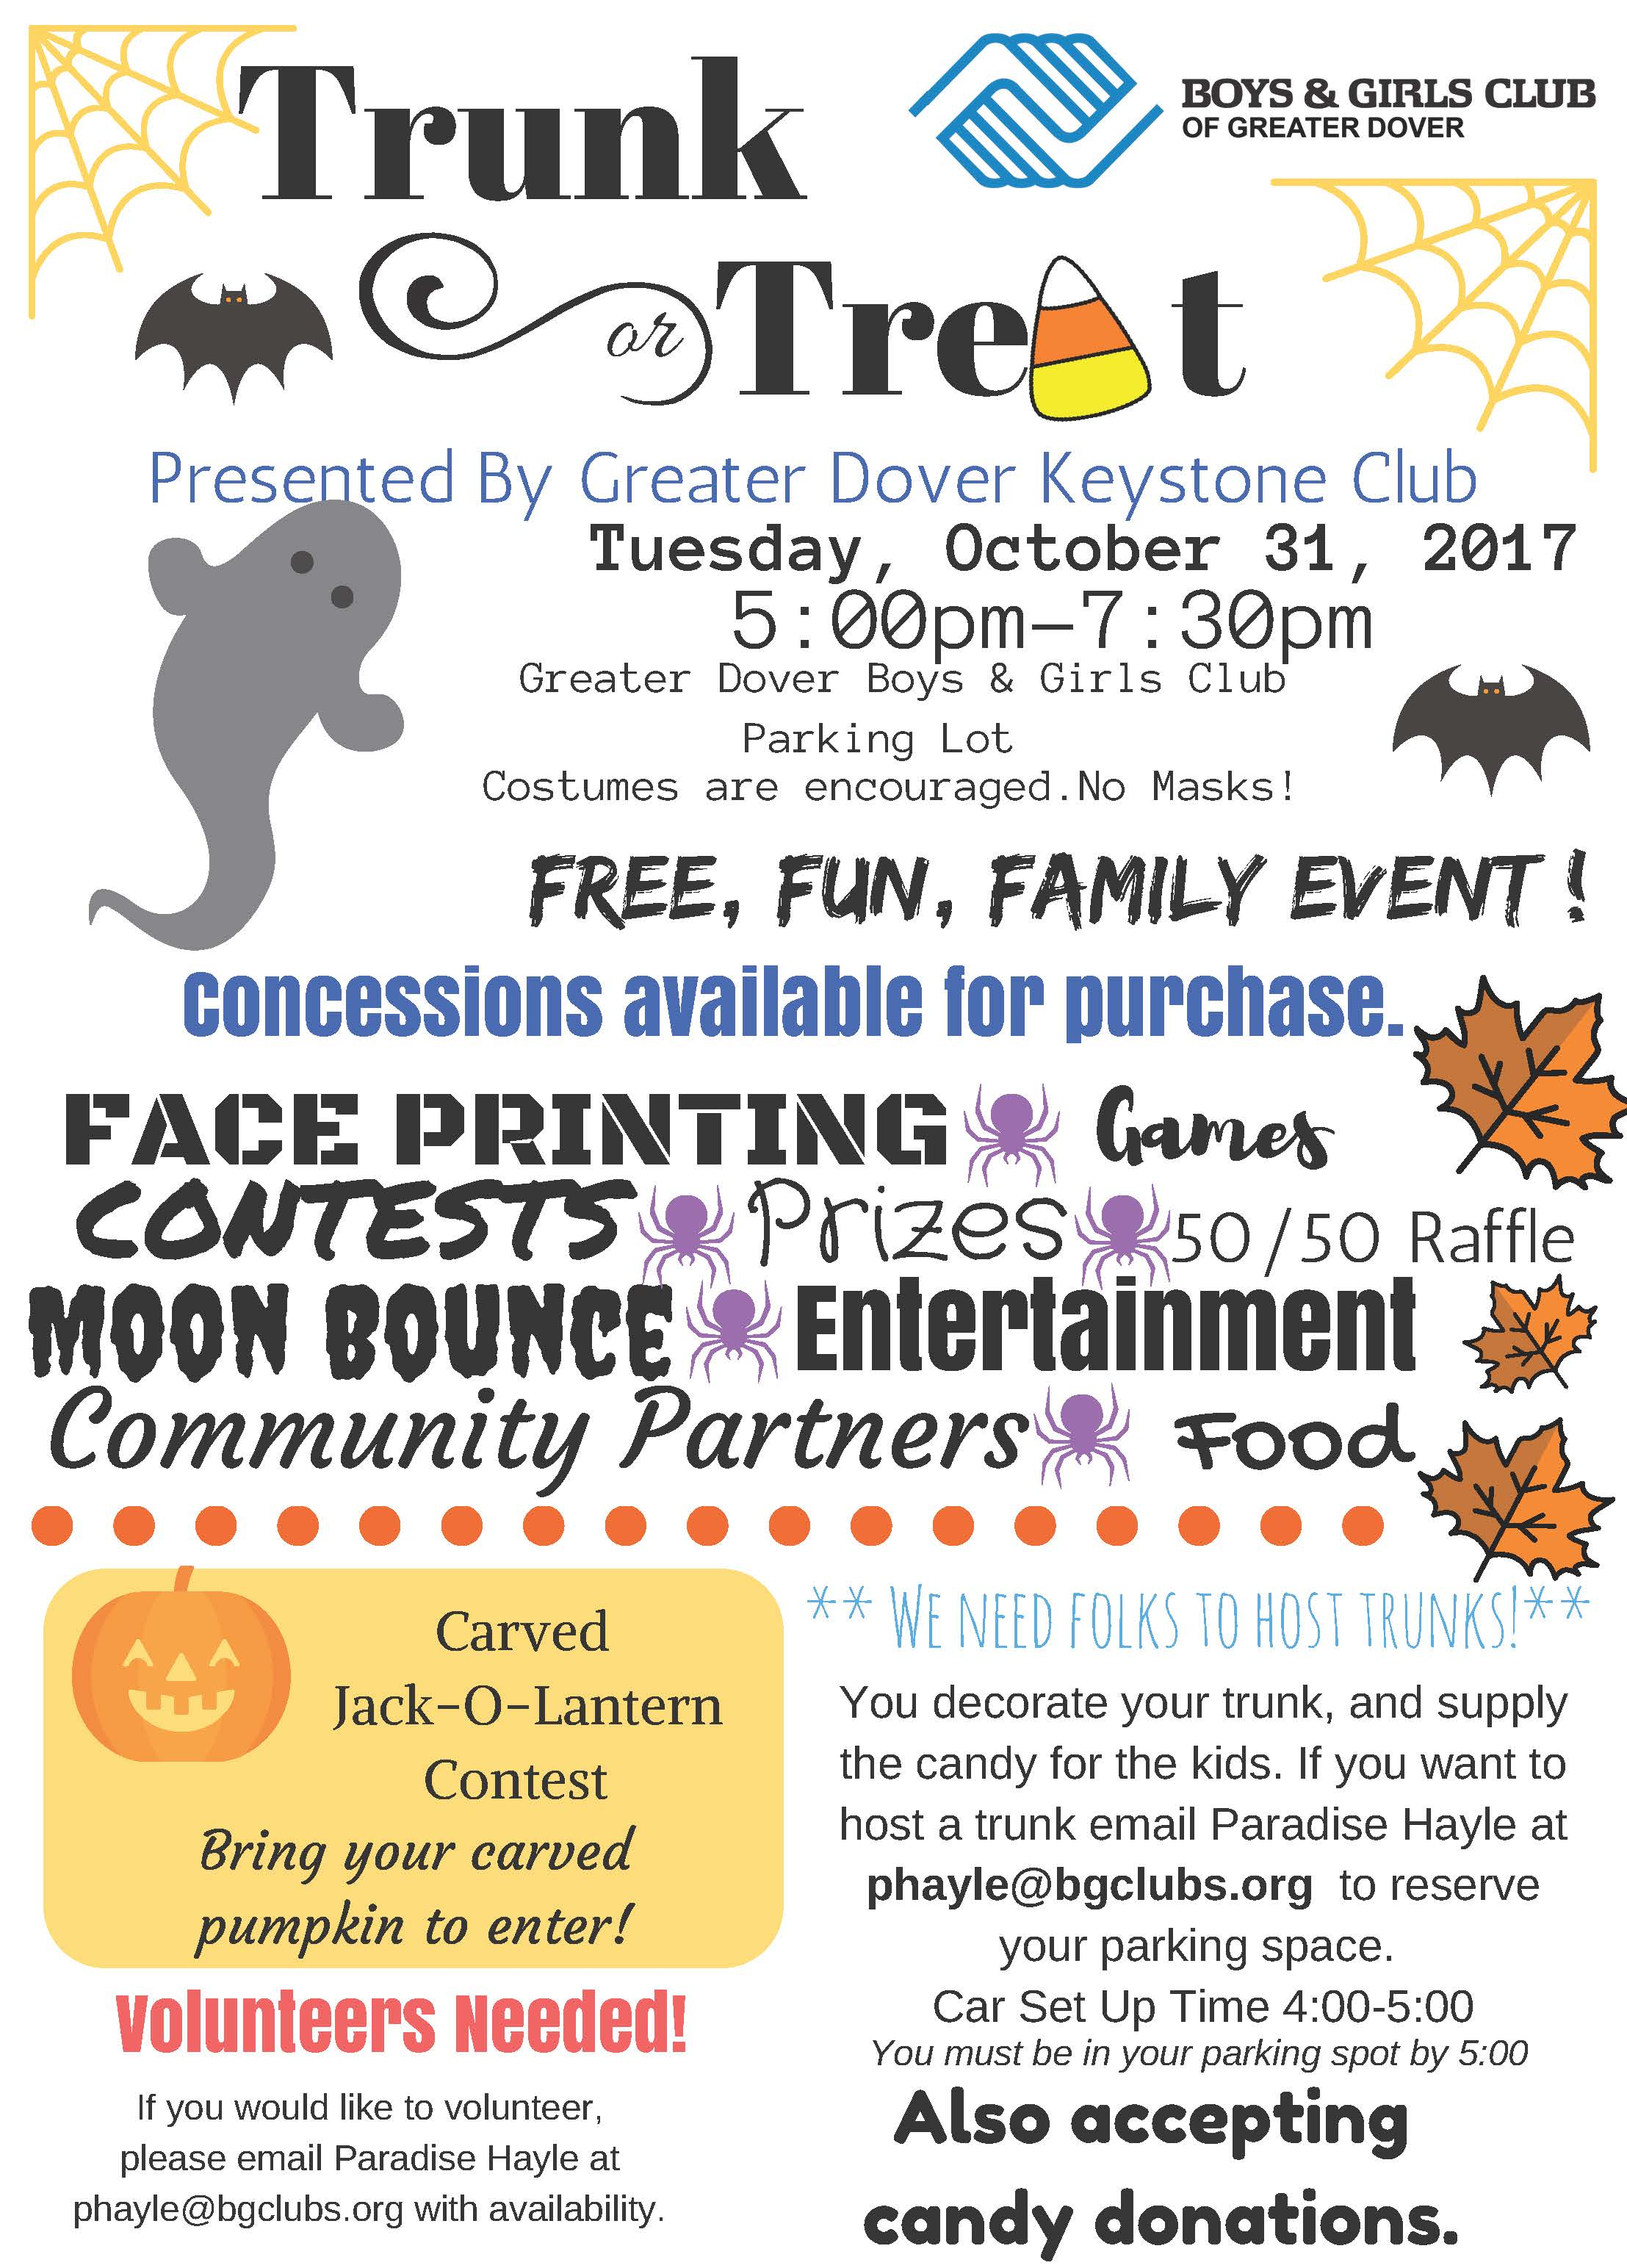 Greater Dover Trunk or Treat